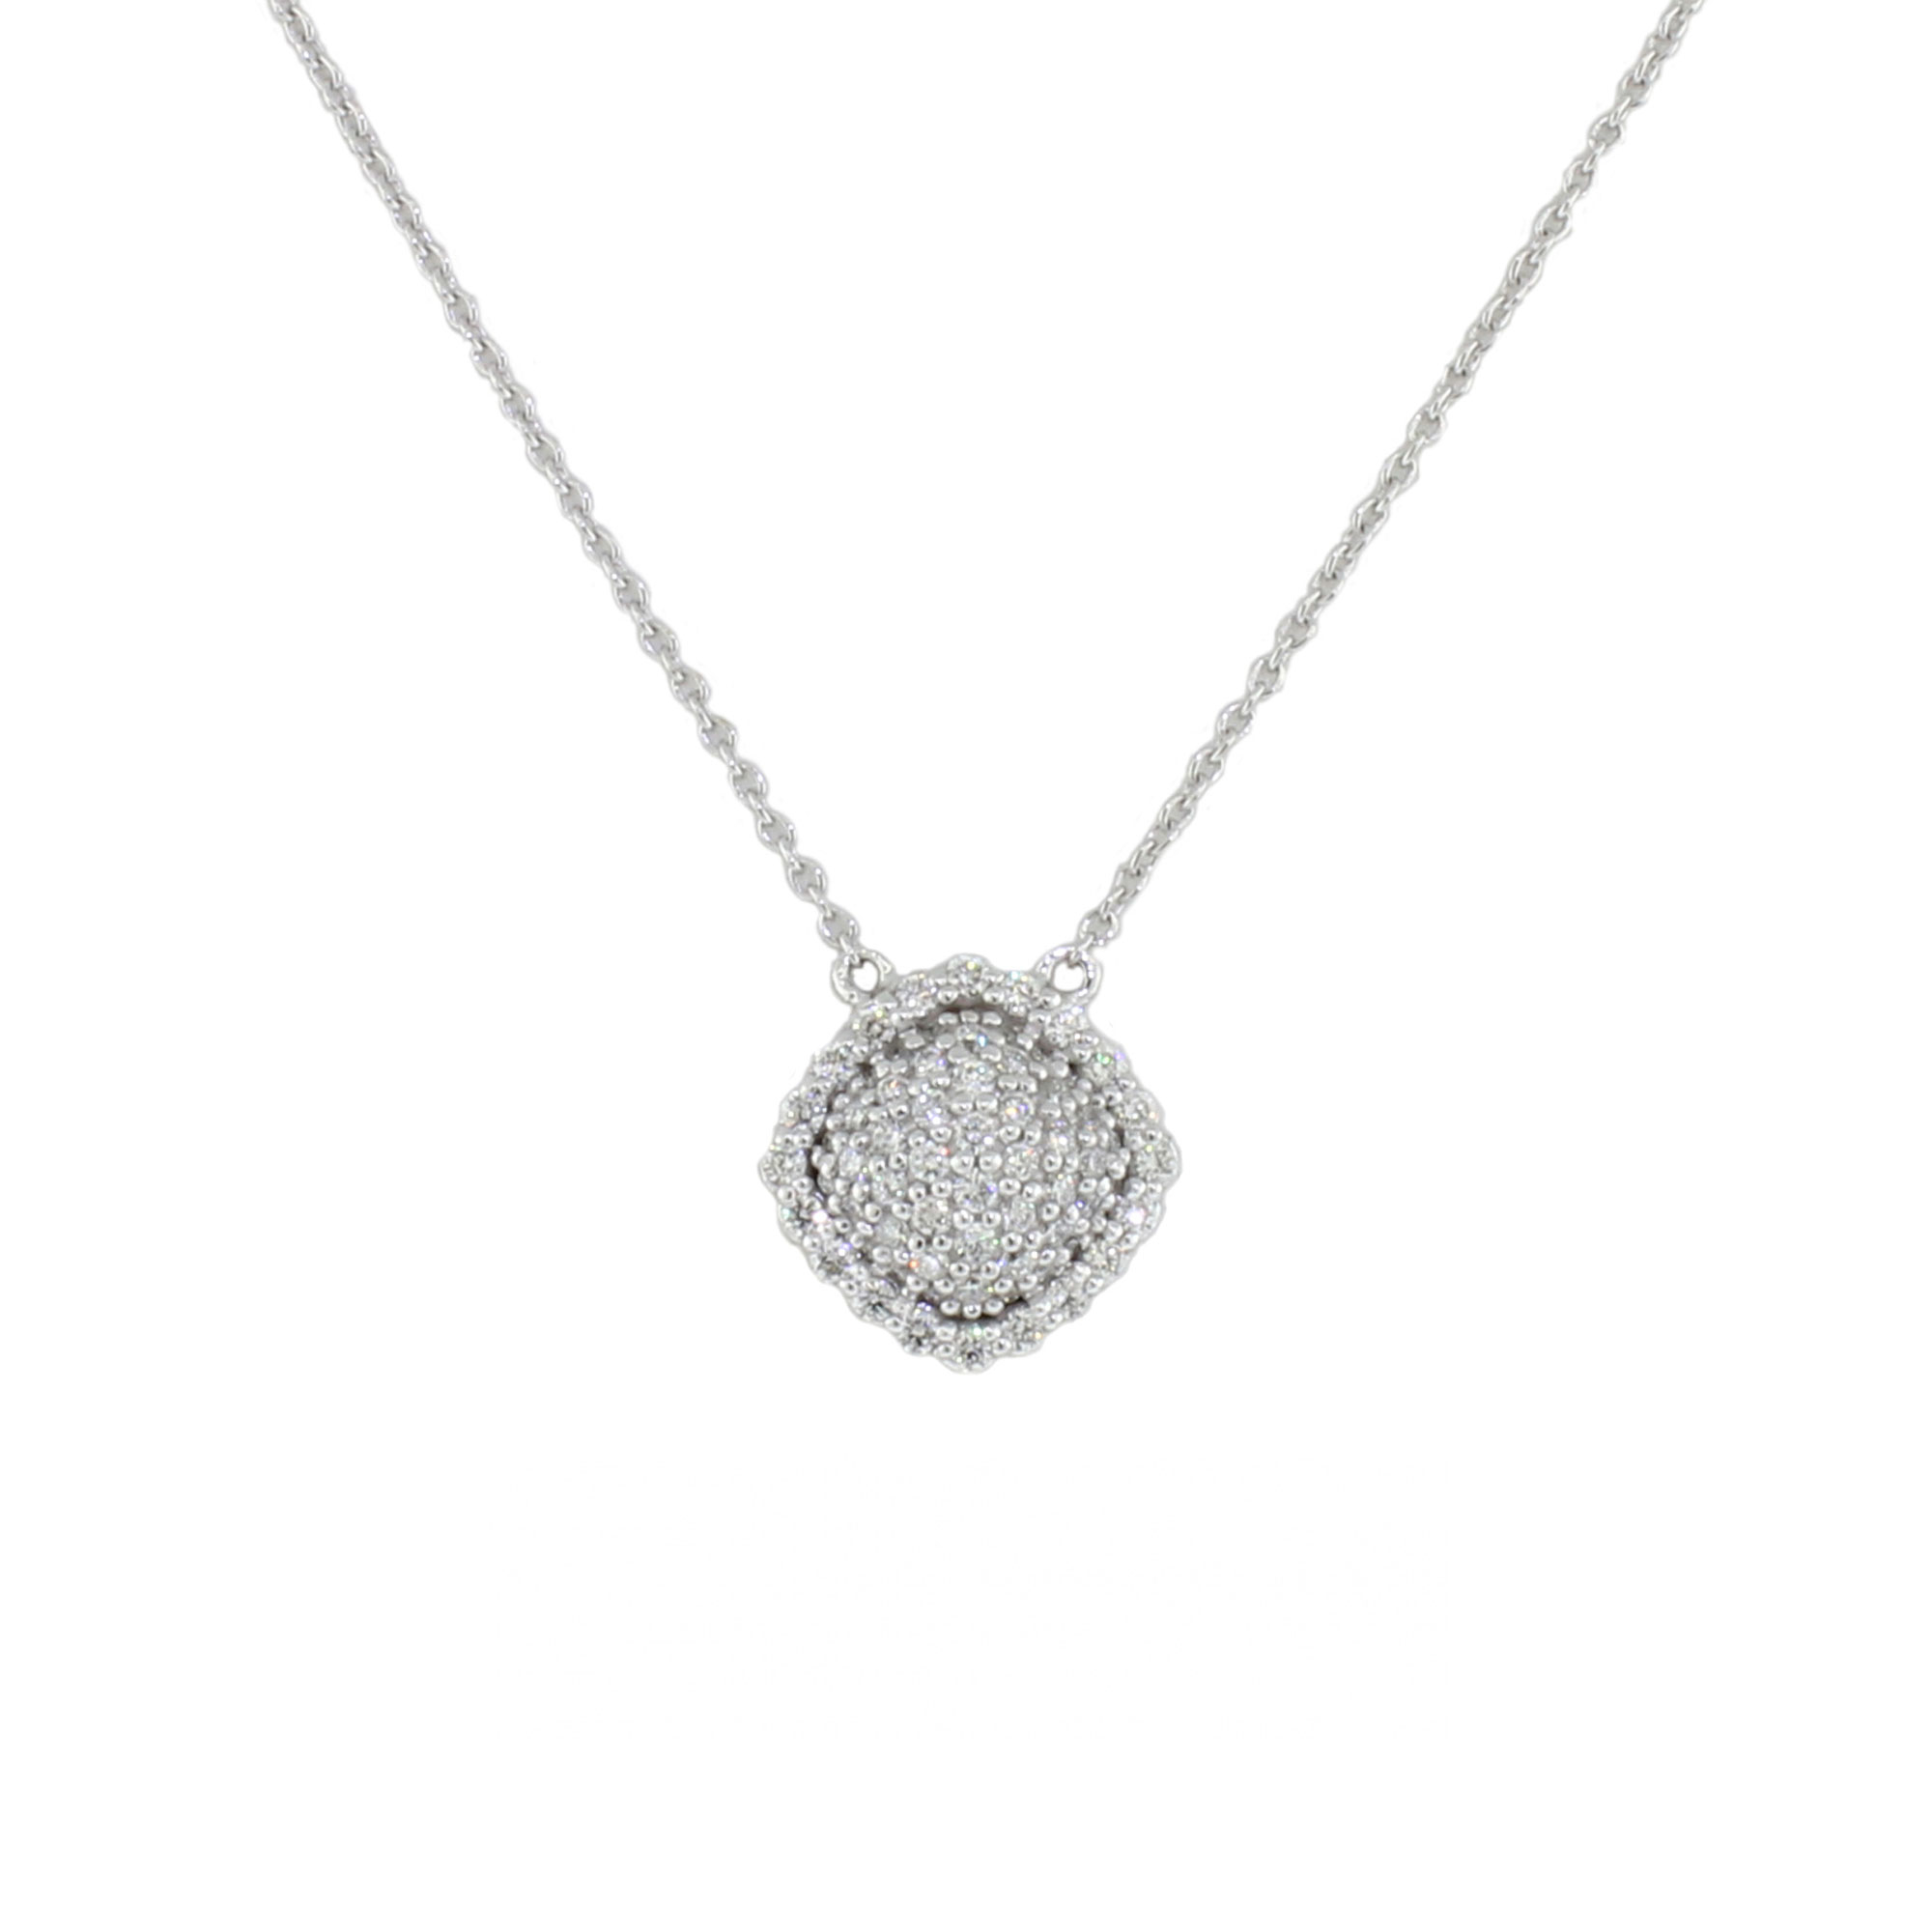 Sloane Street 18K White Gold .47cts  Diamonds Gold Necklace with Stones P006-WD-W